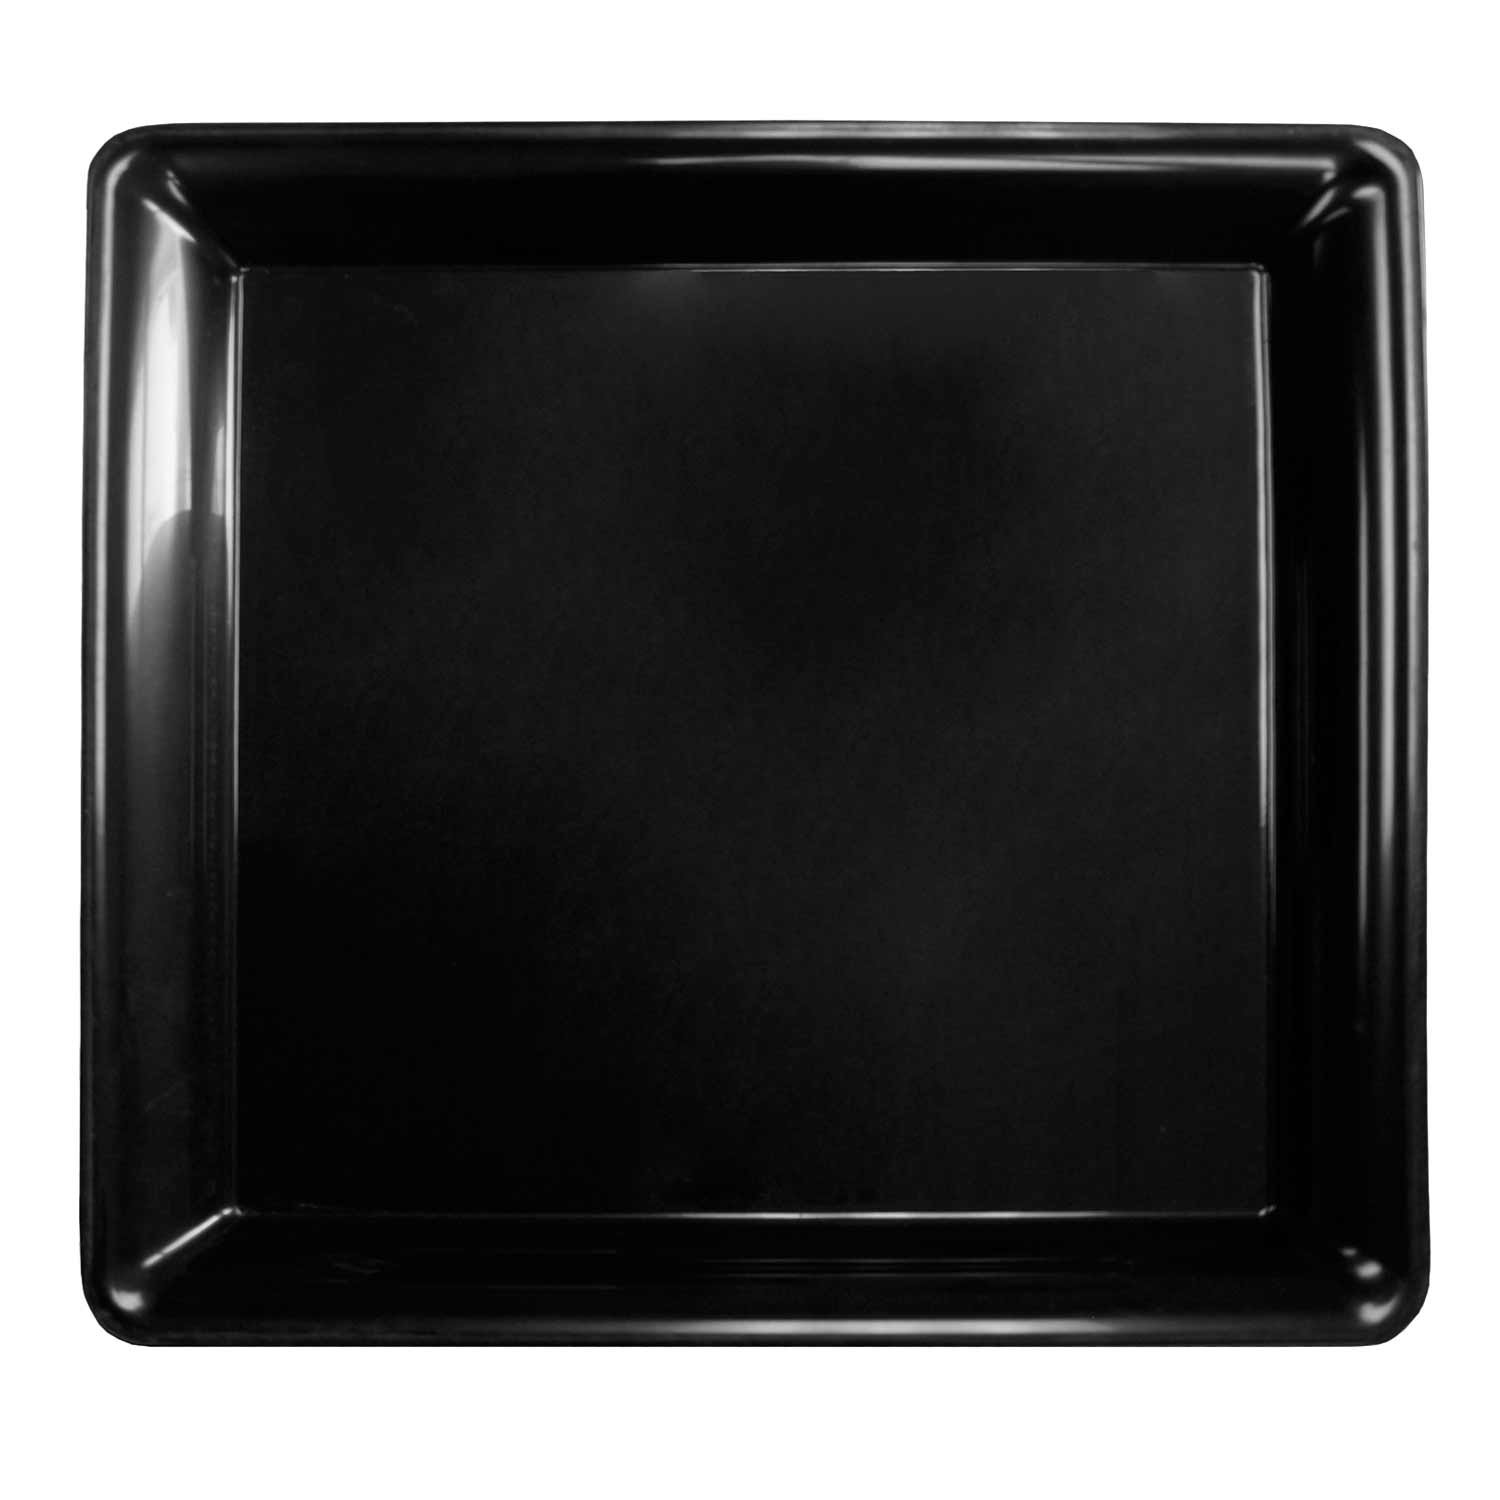 16 Length x 16 Width Case of 6 Black Party Essentials Heavy Duty Plastic Square Tray